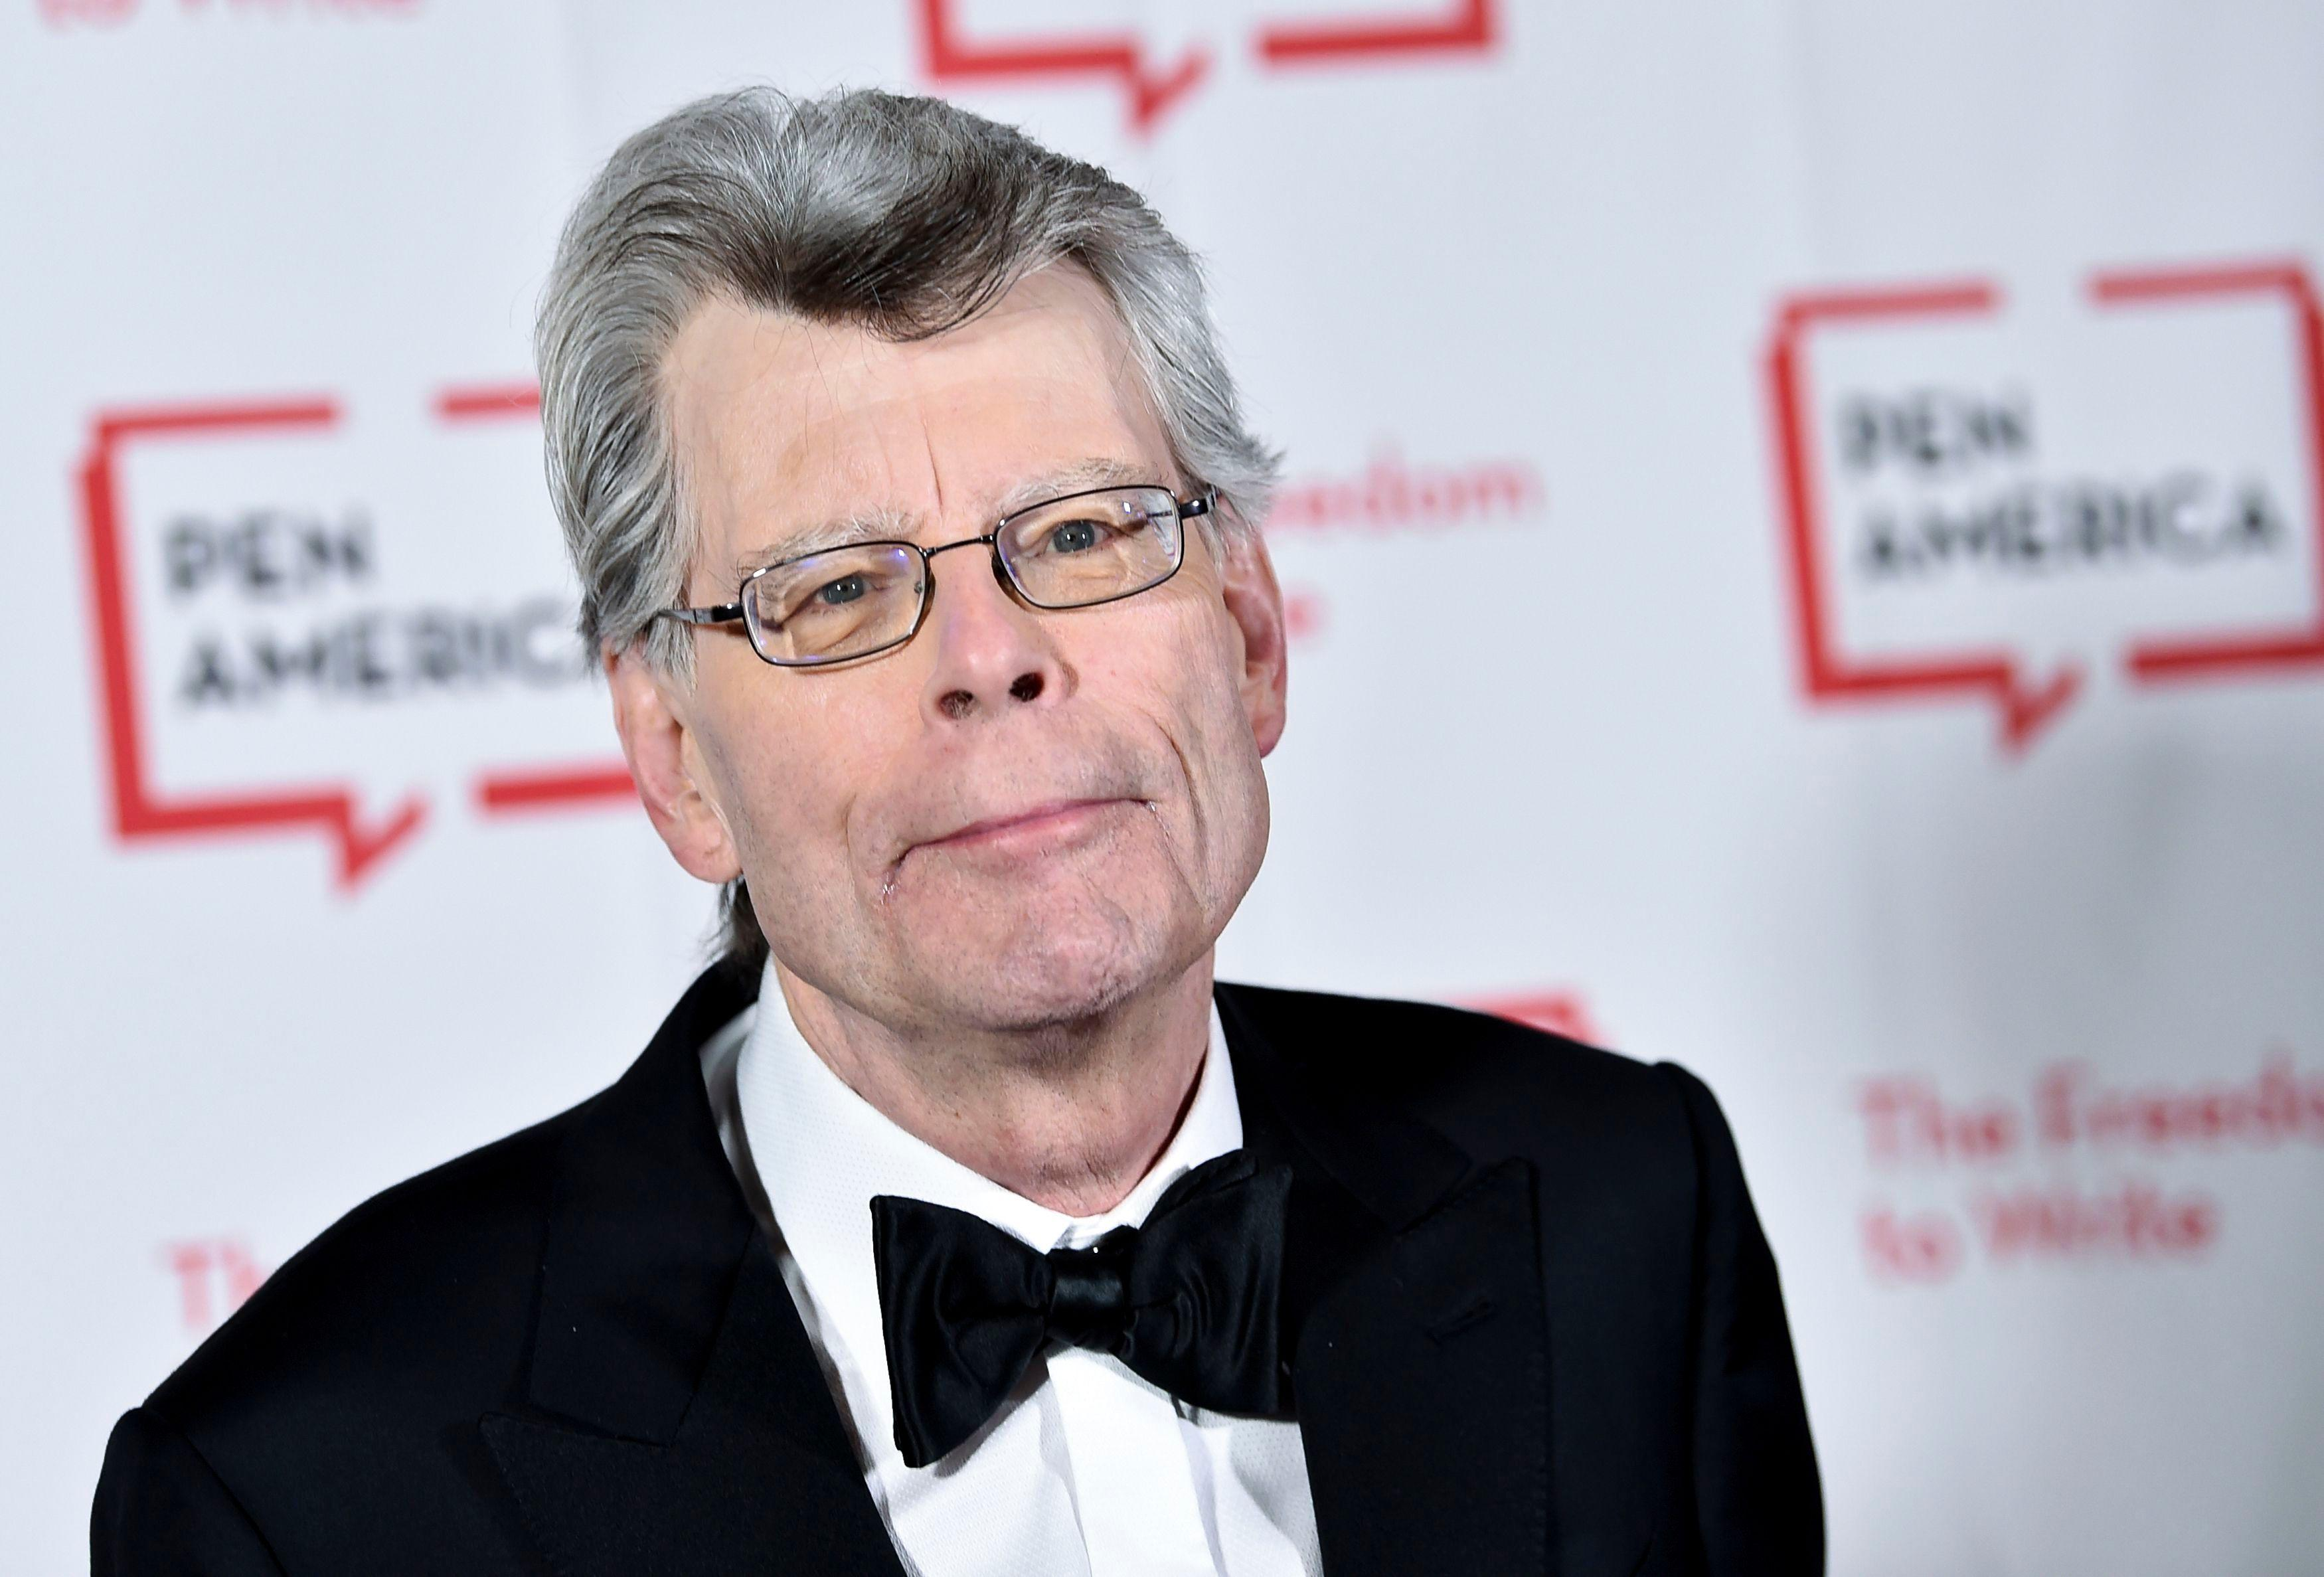 Stephen King Helpfully Posts 'The Stand' Chapter That Explains Pandemic Spread